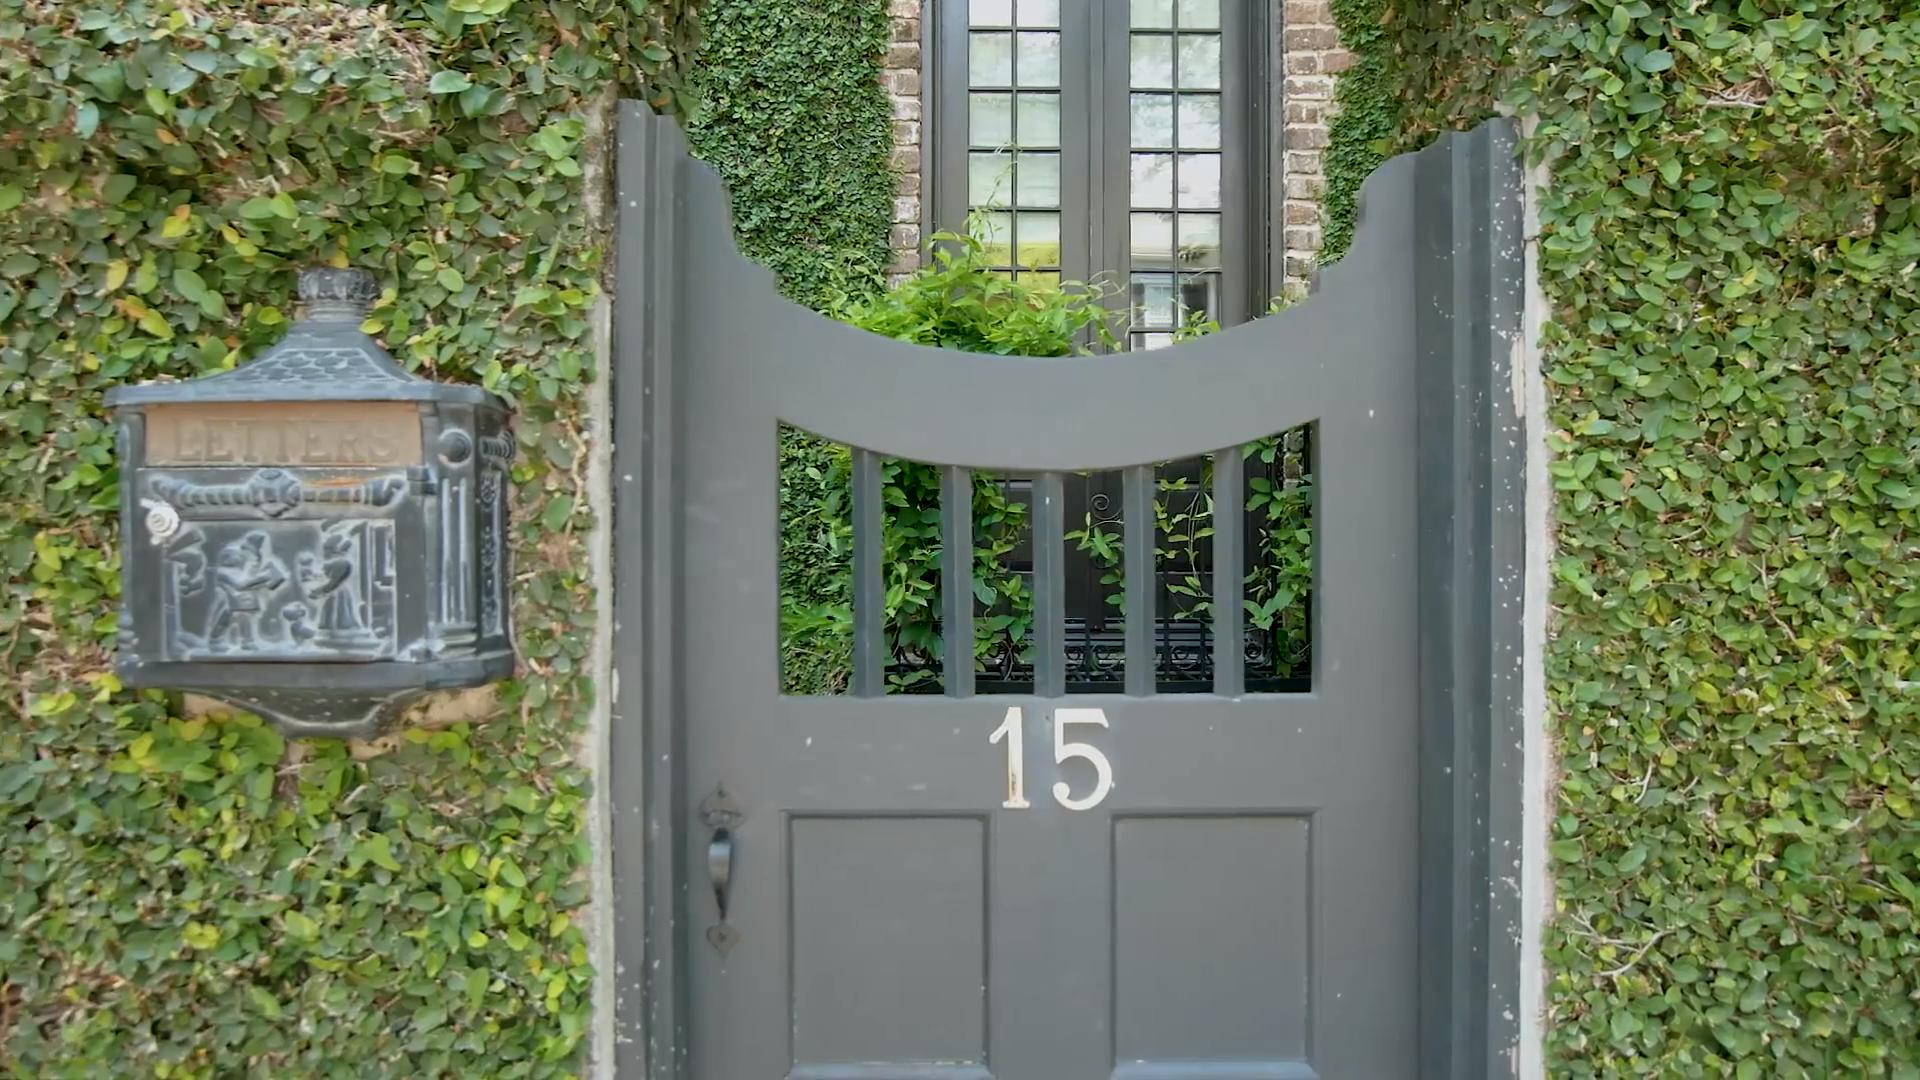 Take A Tour Of 15 Orange Street in Charleston, SC